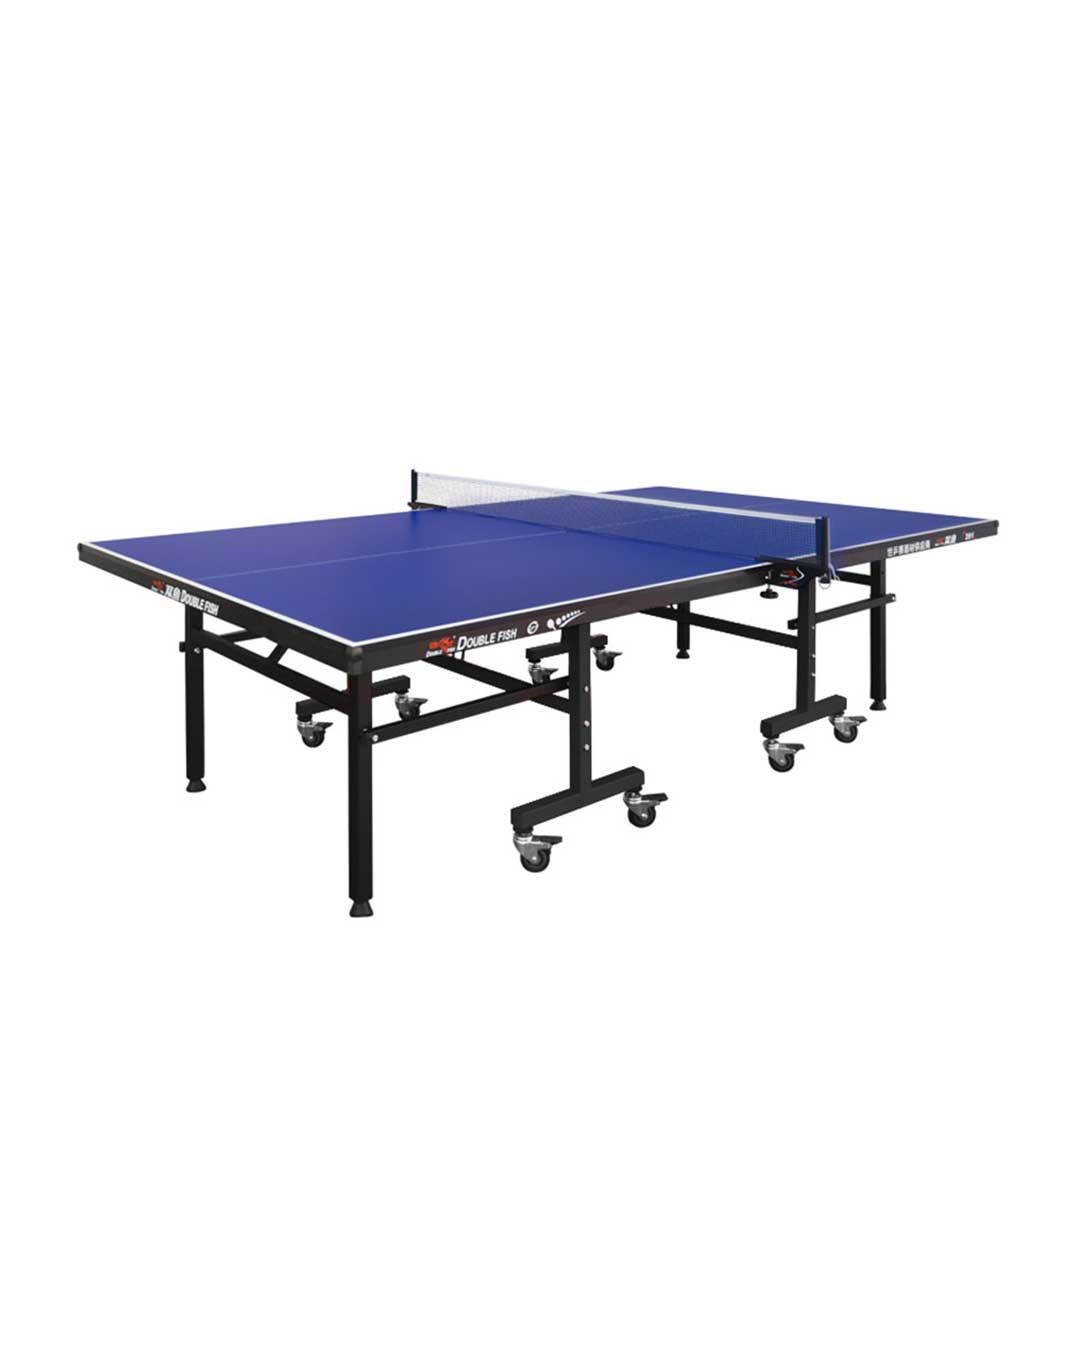 Mesa de Tenis de Mesa (Ping Pong) Double Fish 18mm